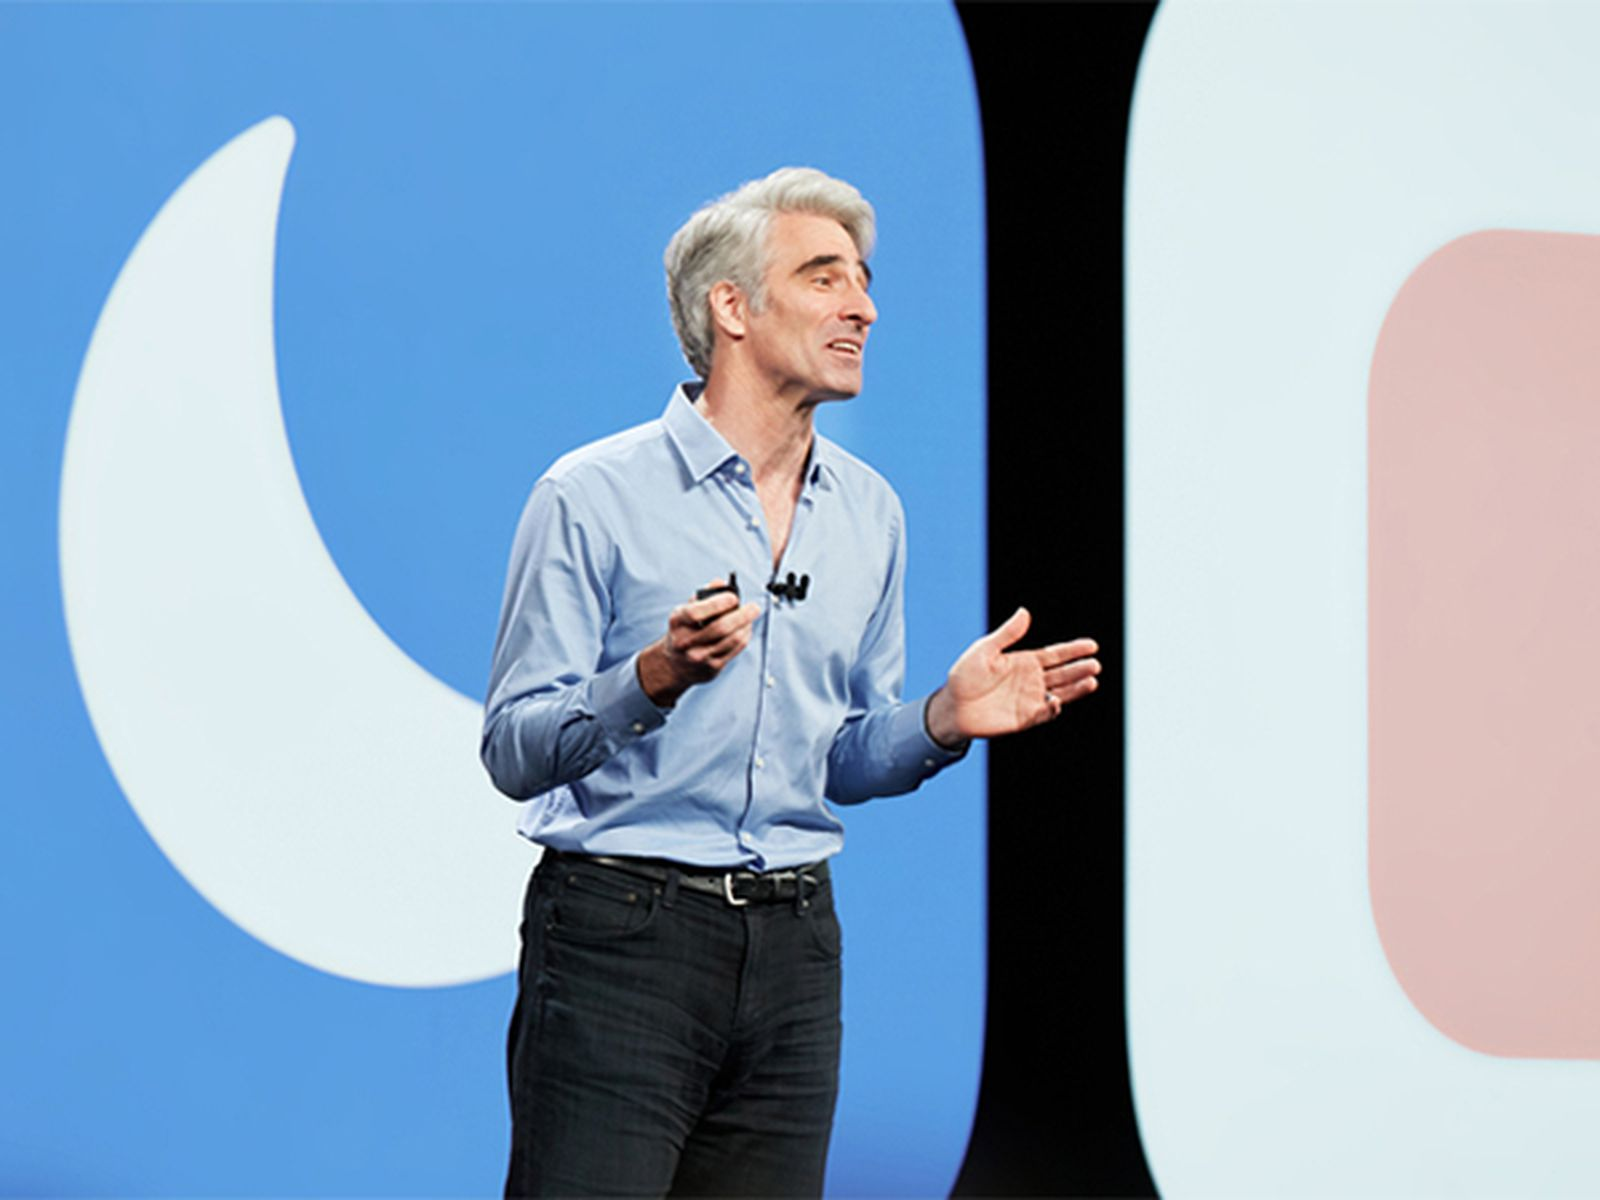 Craig Federighi Responds To Google S Subtle Luxury Good Dig About Apple Products And Privacy Macrumors